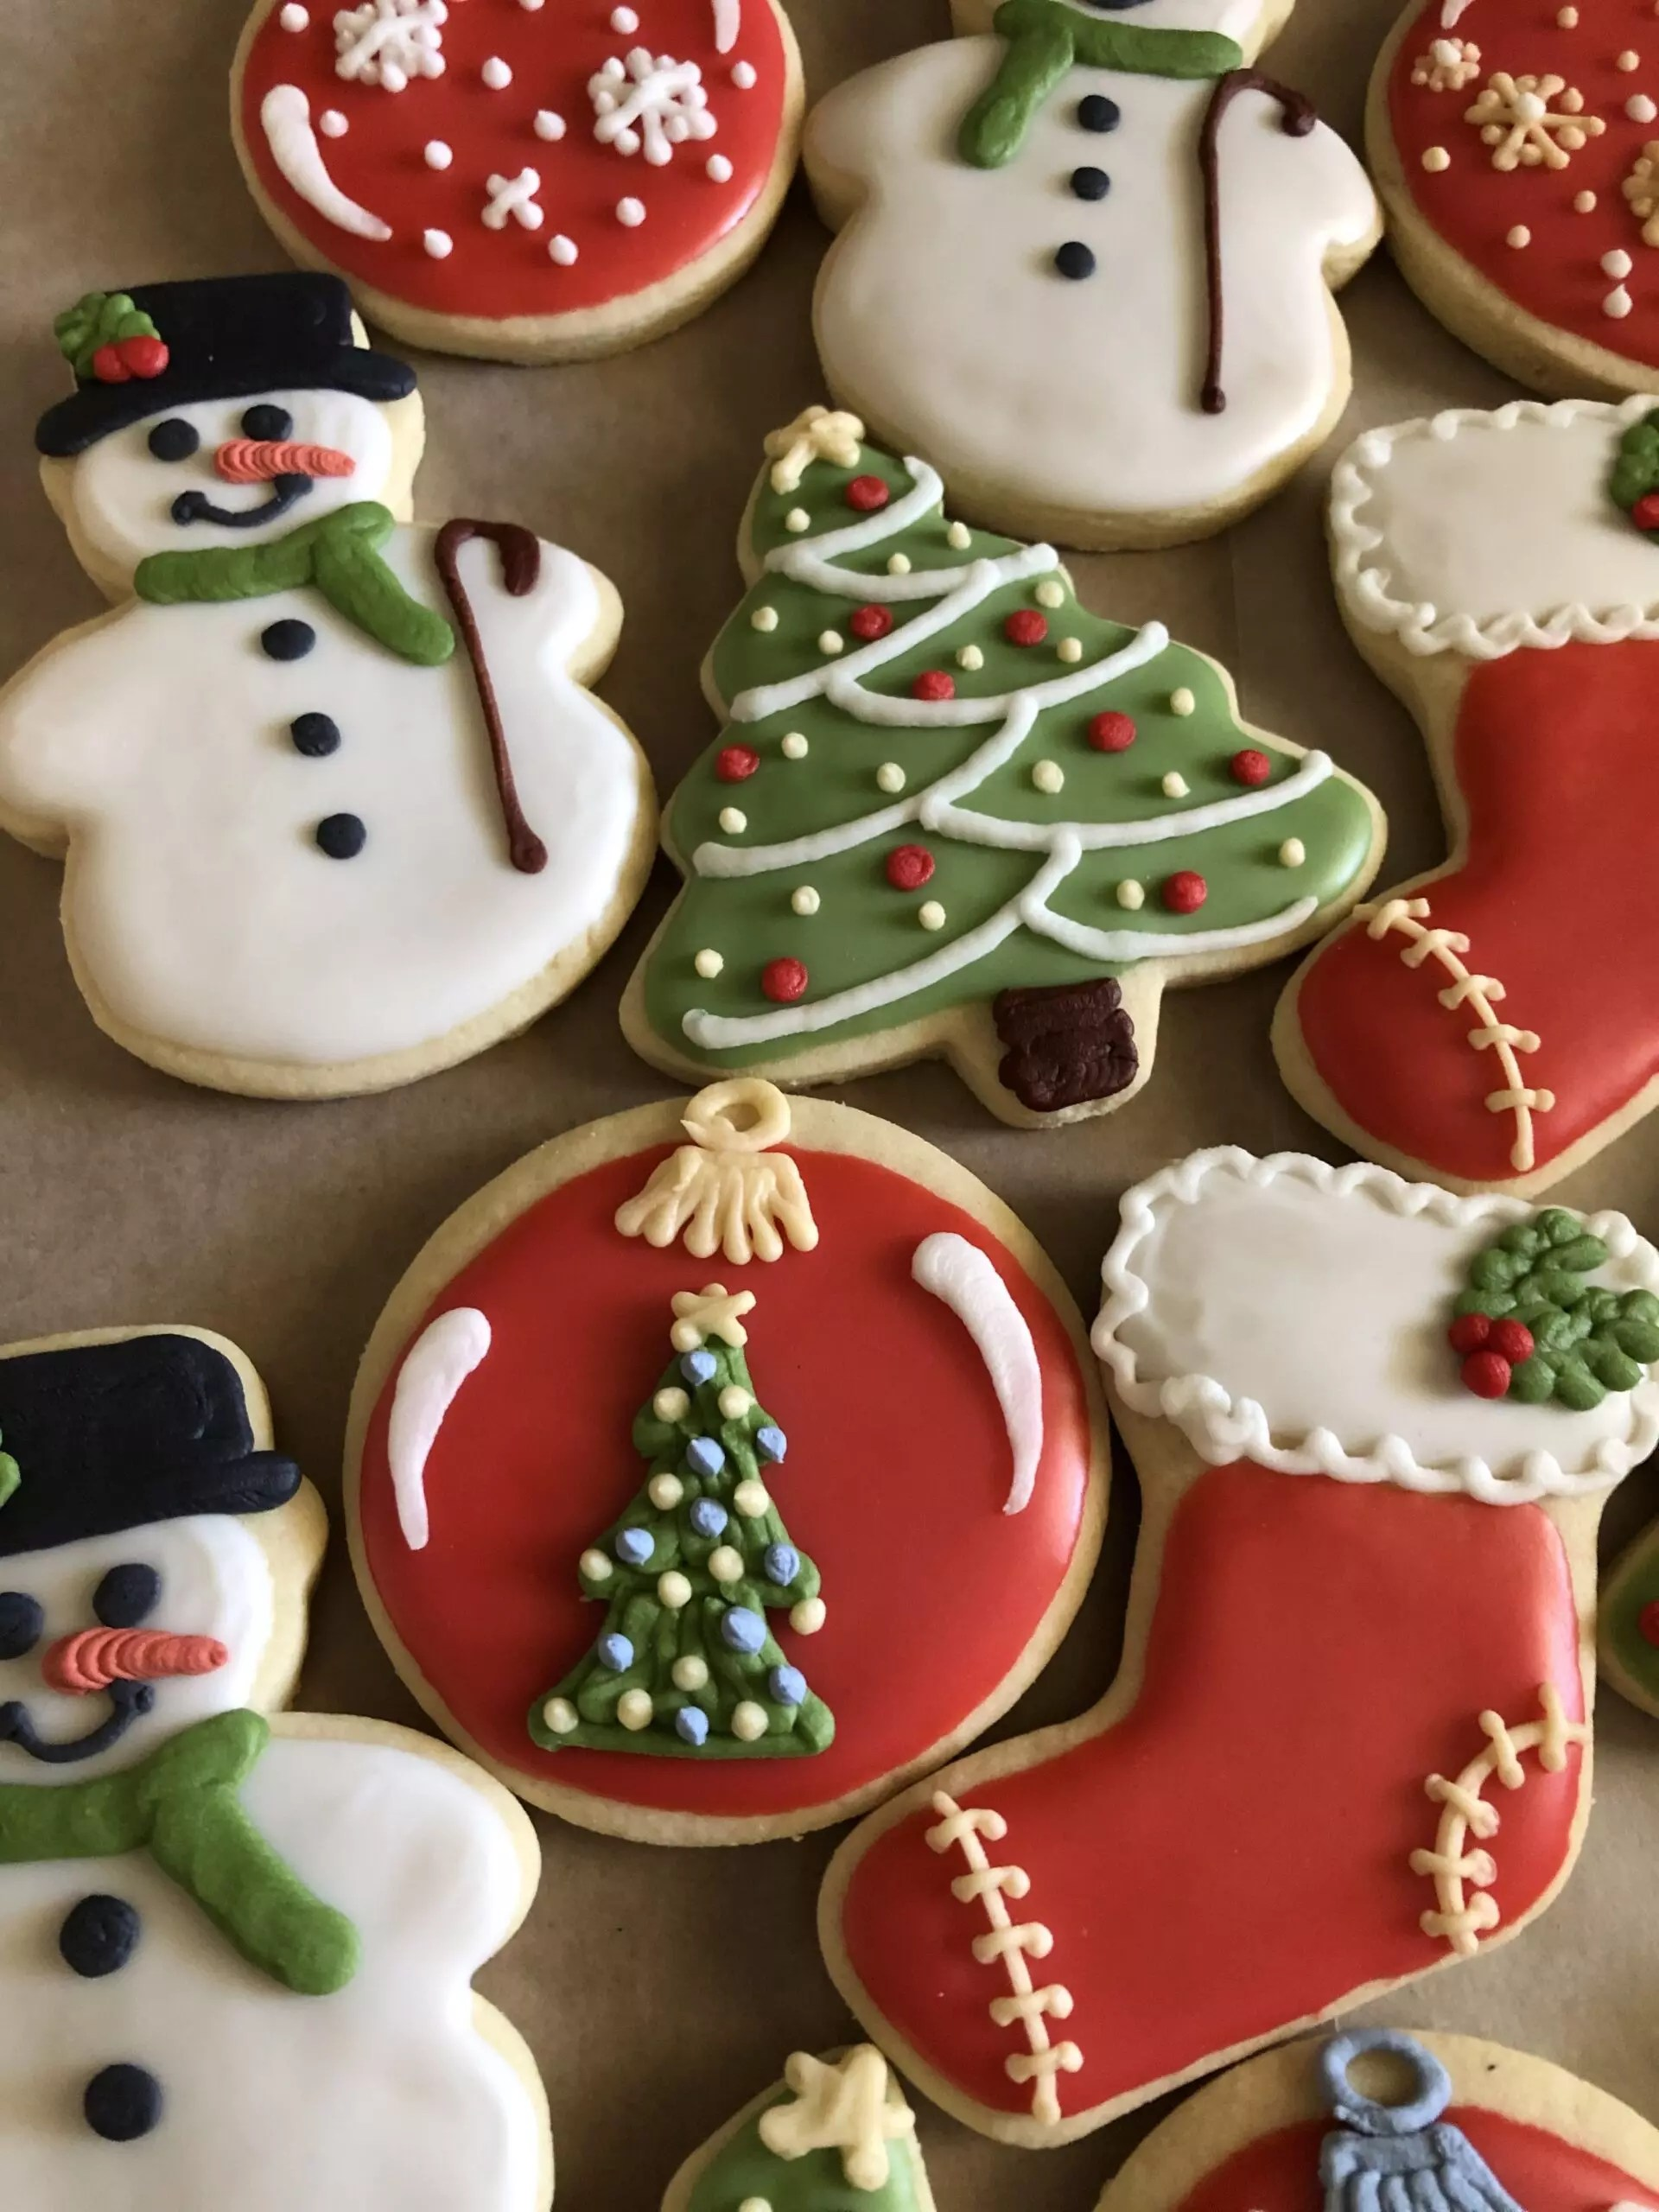 2020/12/20 Baking And Decorating Holiday Sugar Cookies Ages 16